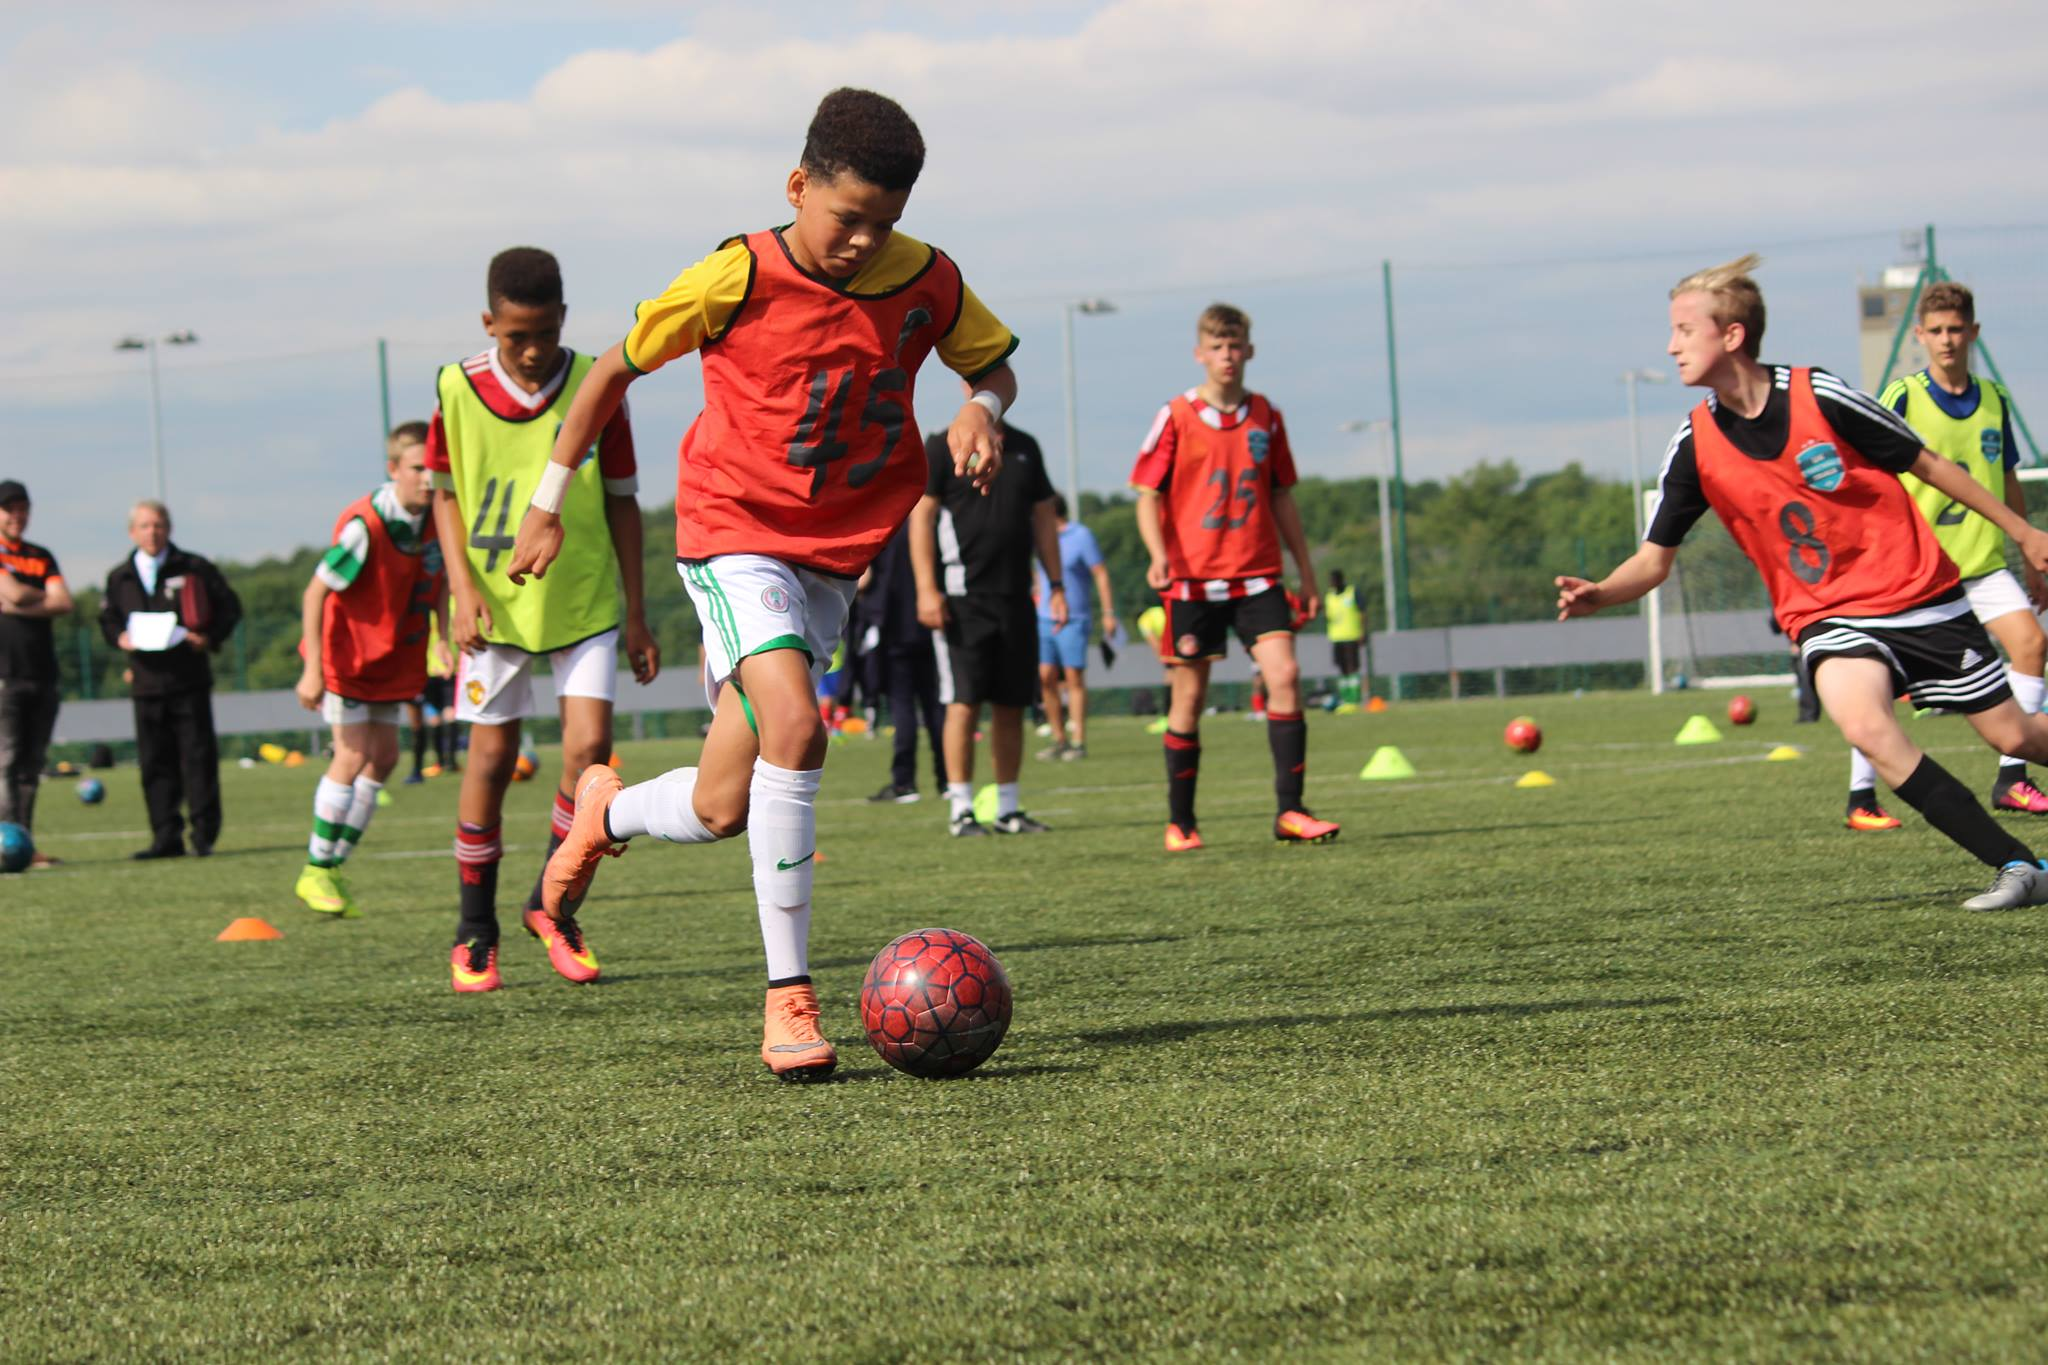 Manchester Football Trial May 28th - AM - Ages 10 to 14. Hurry - 3 spaces left at this price!